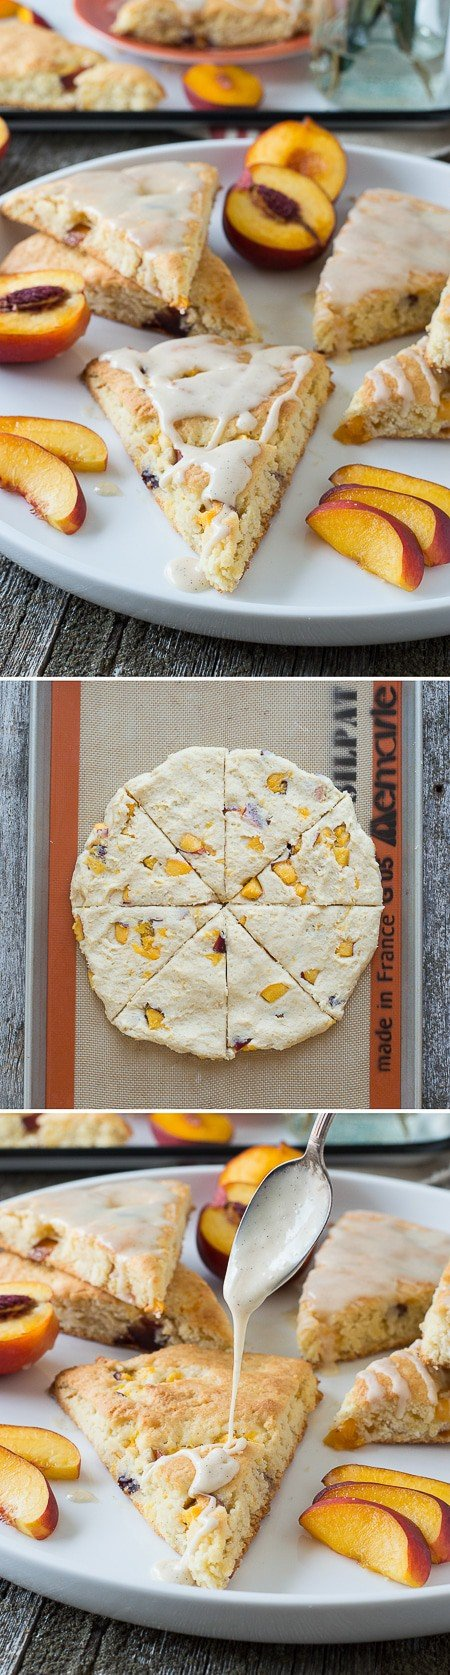 These fruit scones are loaded with fresh nectarines then drizzled with a vanilla bean glaze! Only 30 minutes from start to finish!